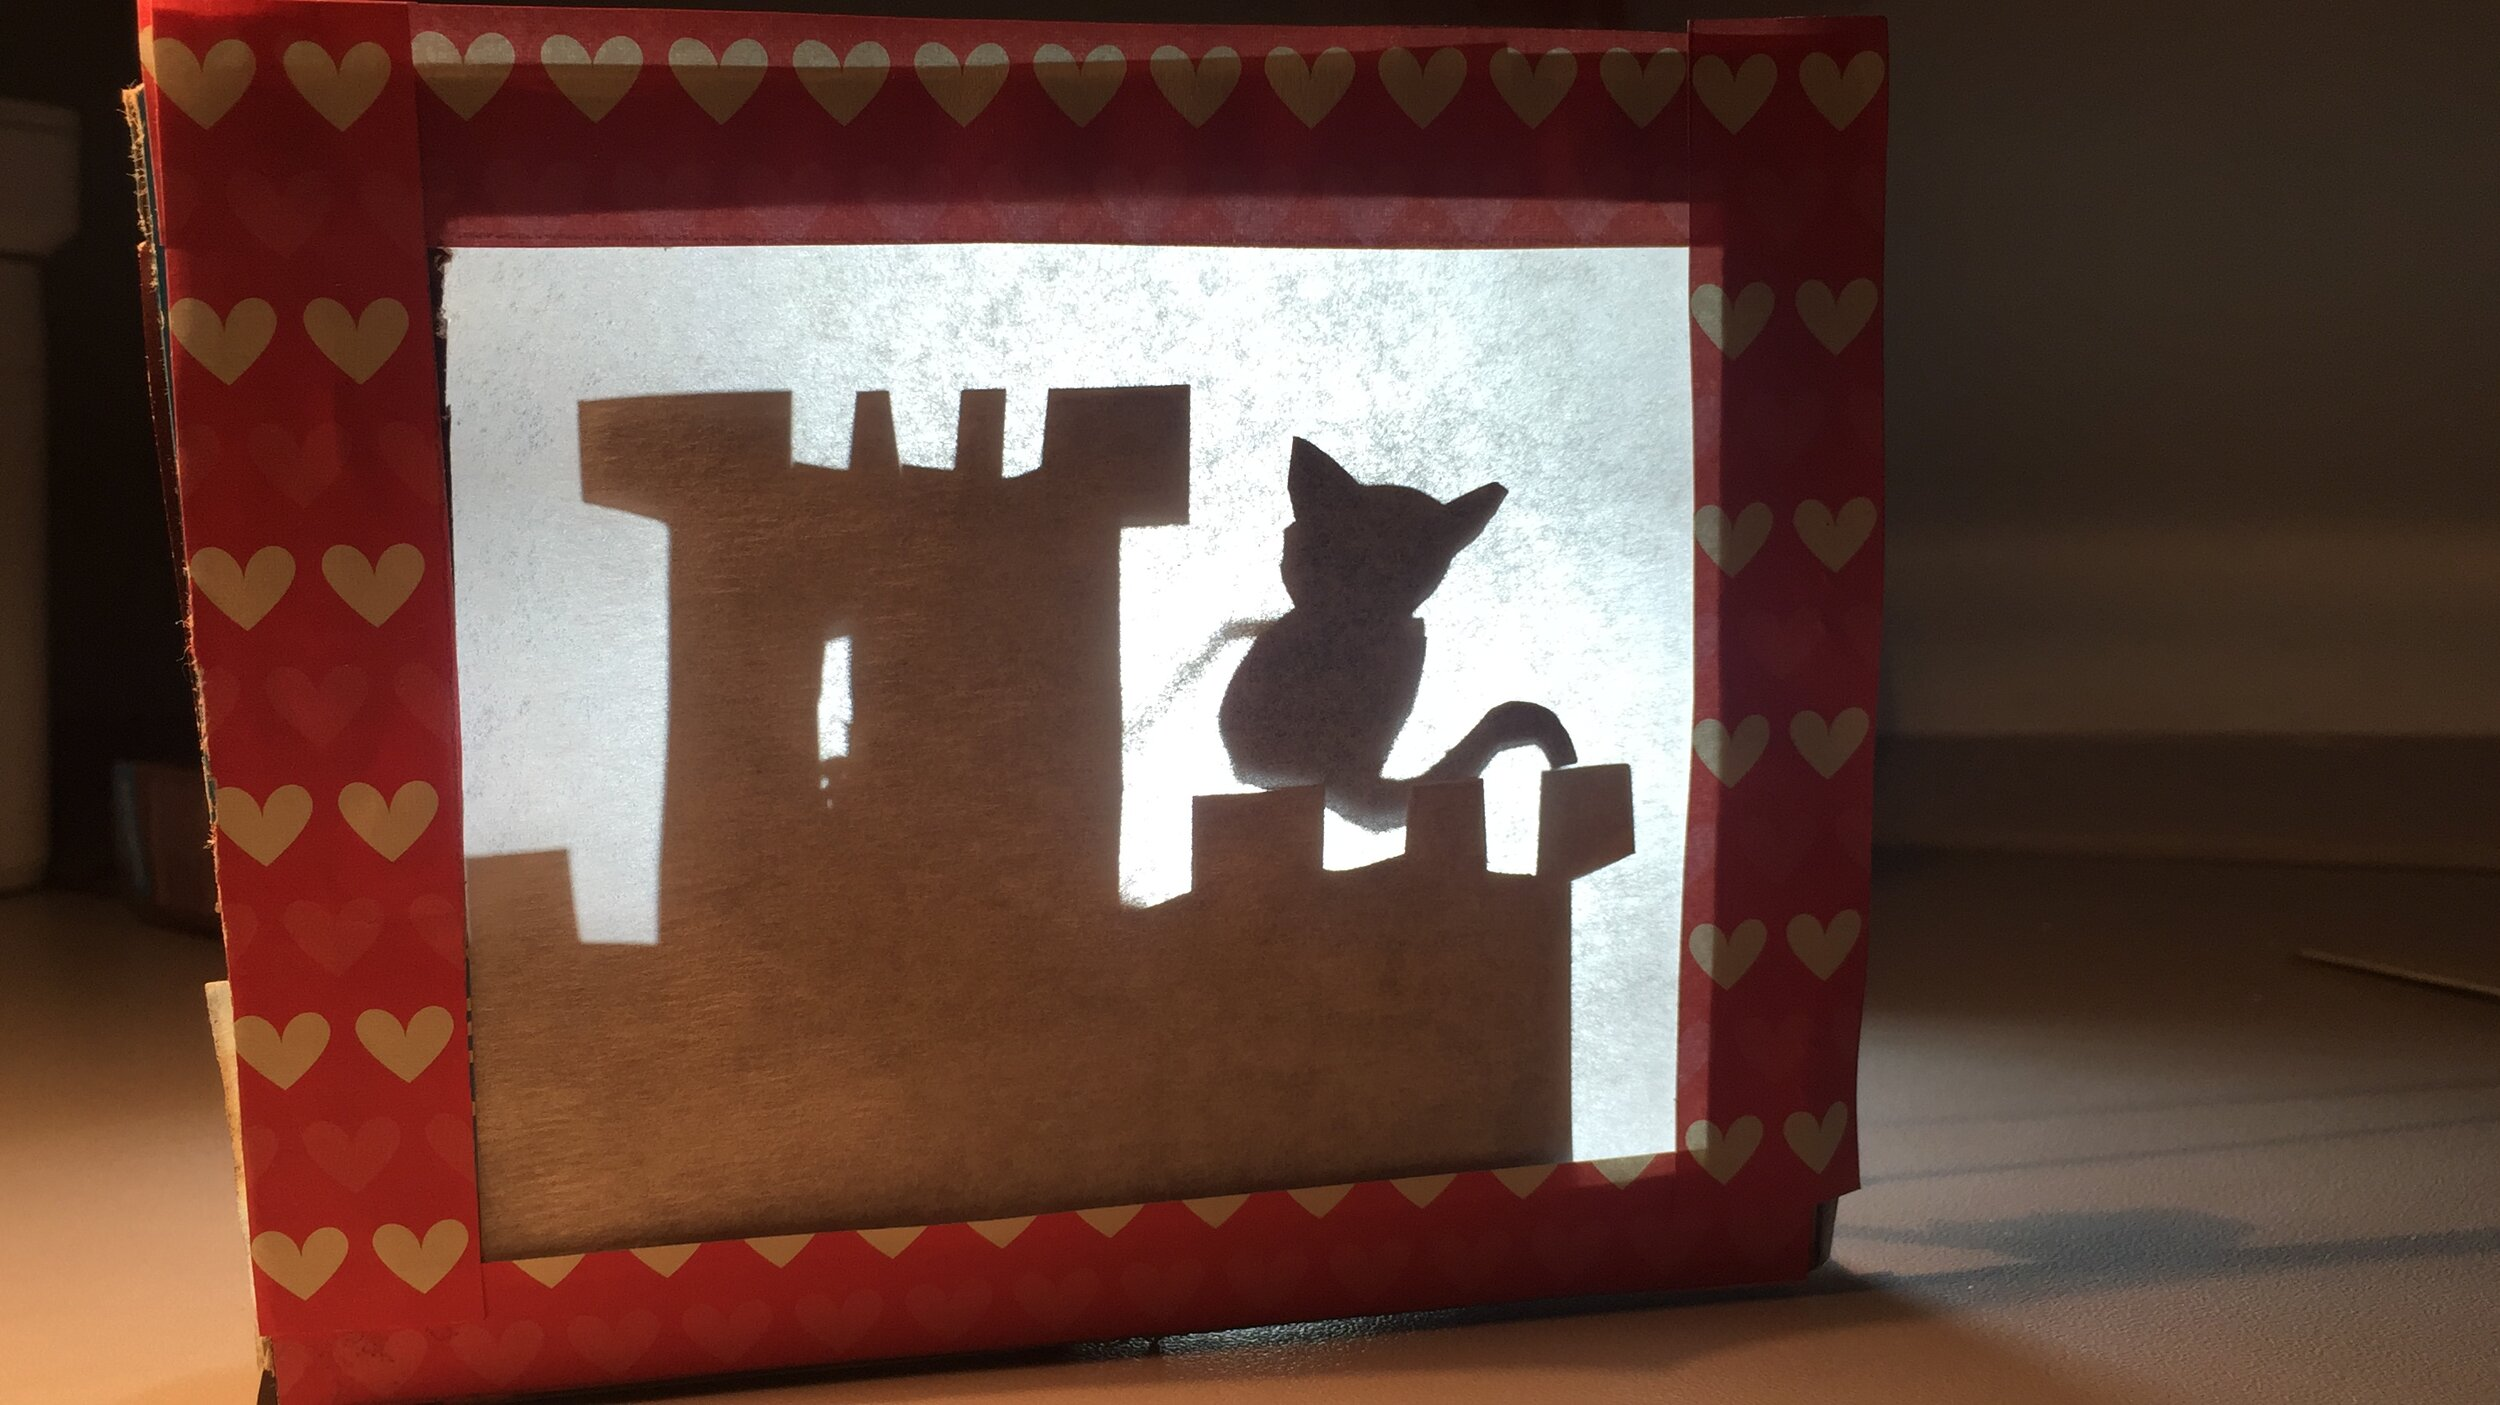 Completed tiny shadow puppet theatre